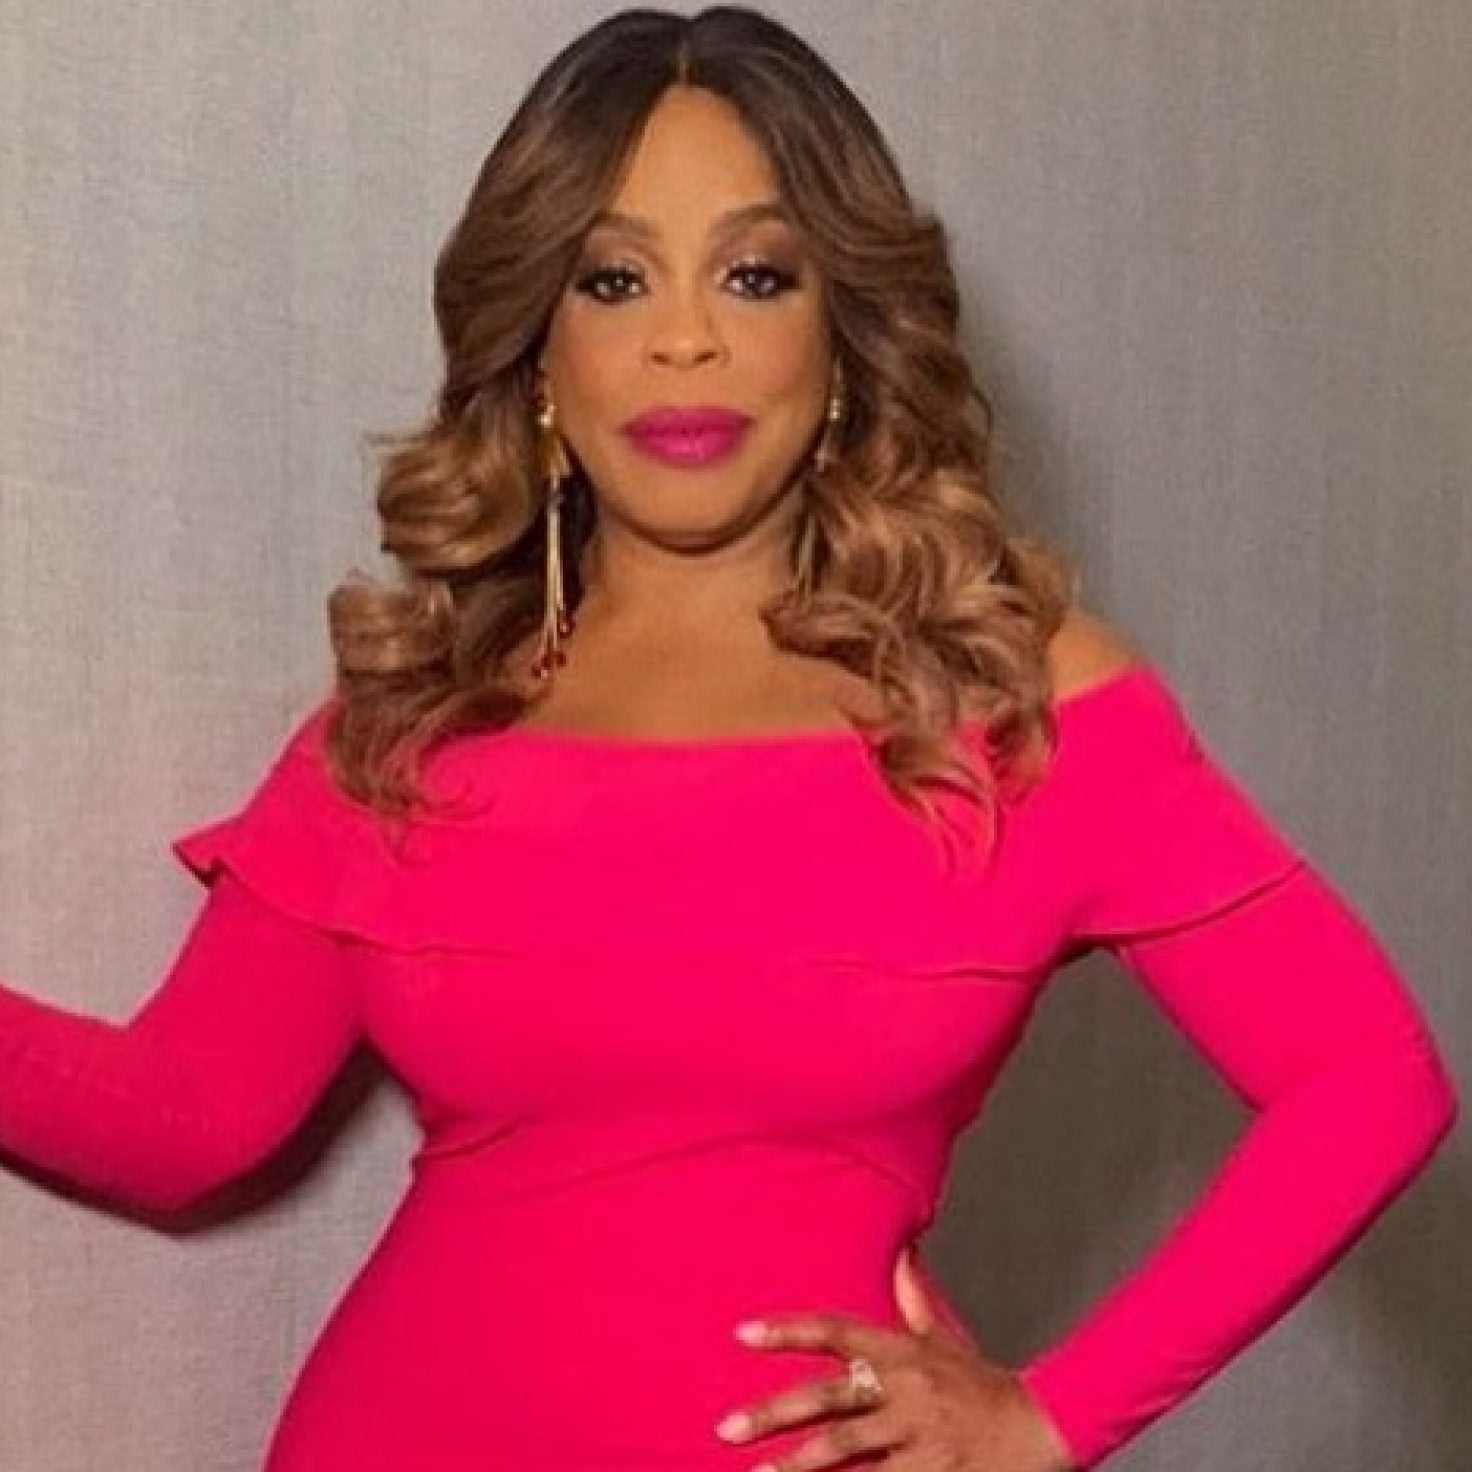 Niecy Nash's Hot Pink Dress Is The Perfect Pop Of Color This Season